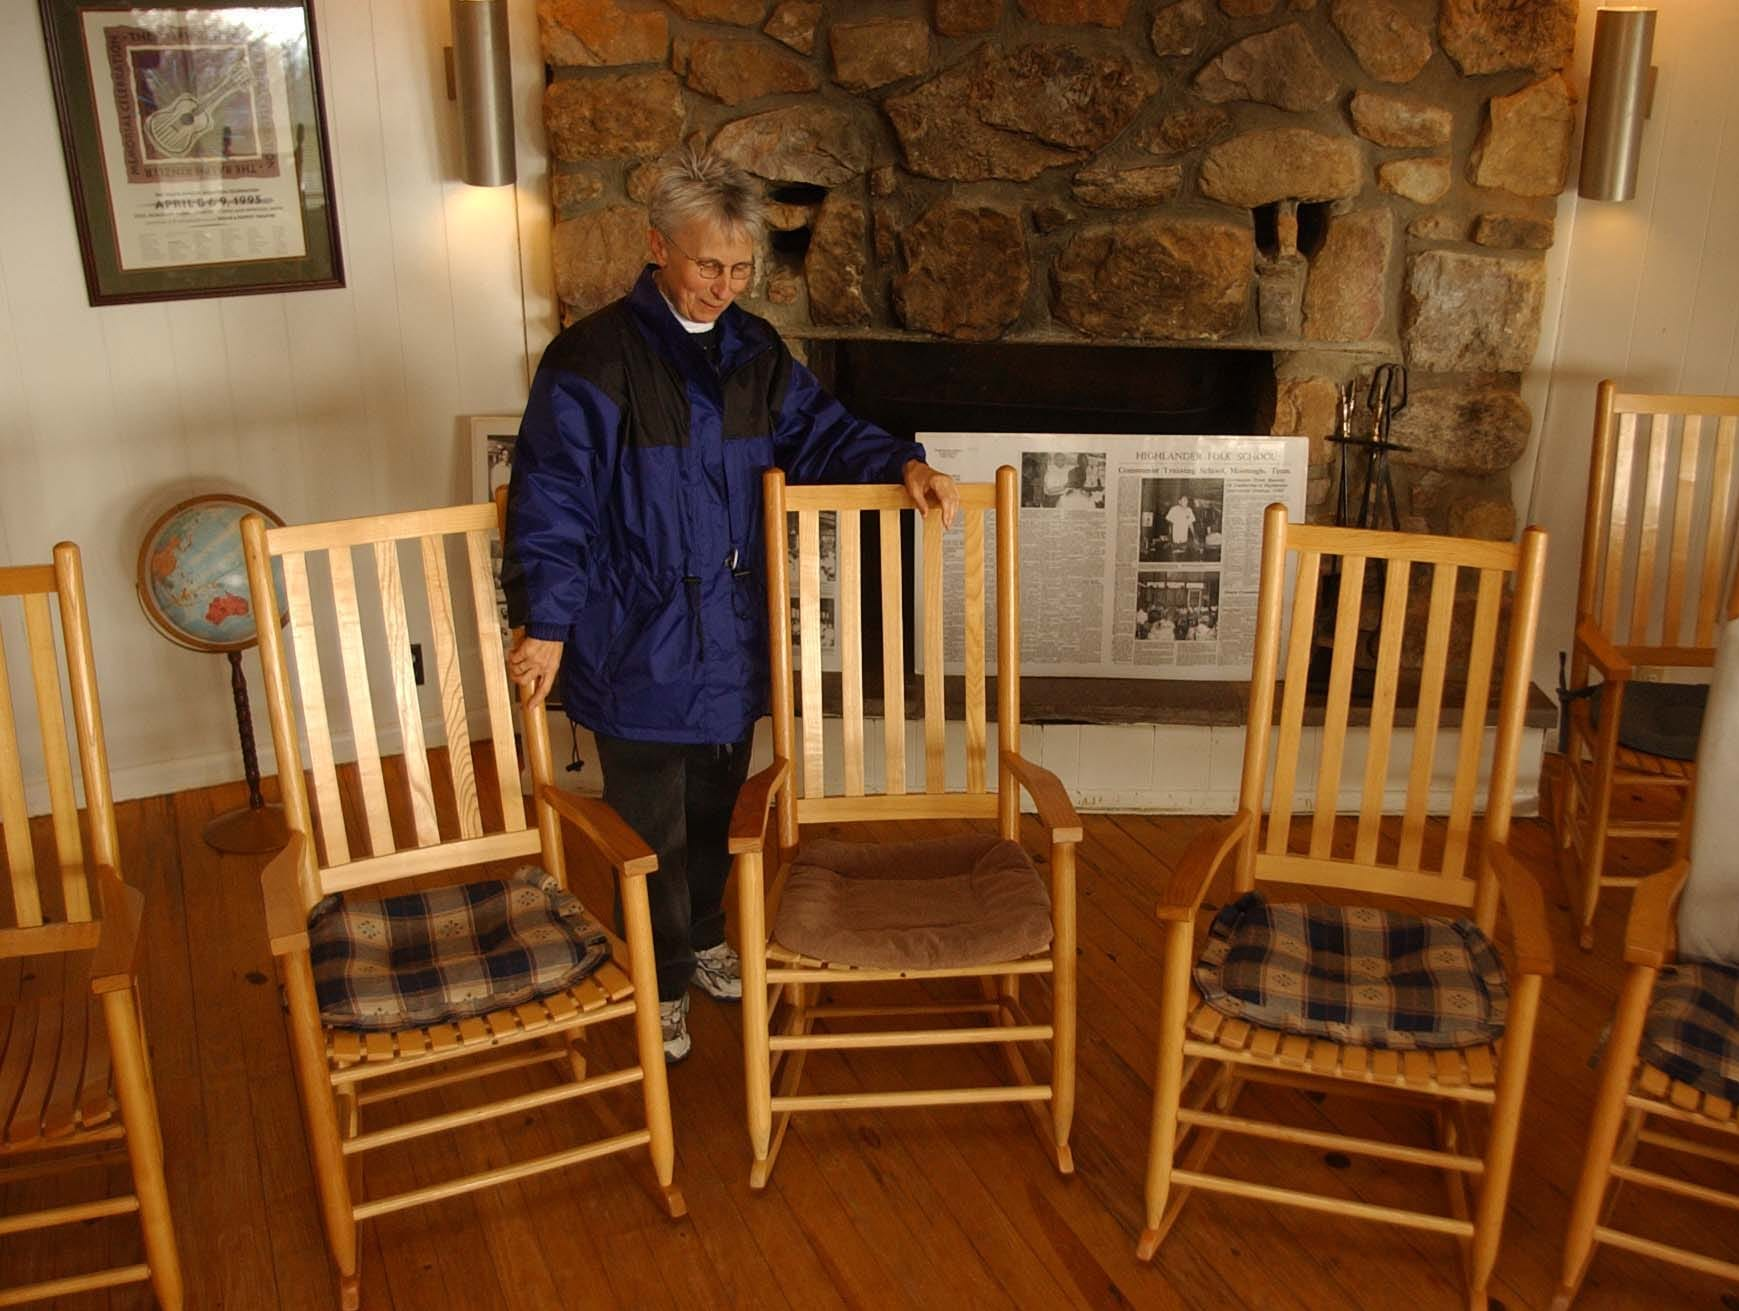 Suzanne Pharr Director of the Highlander Research and Educational Center in New Market stands with some of the trademark rocking chairs used during  conferences.  The Highlander Research and Educational Center is known for its 70-year history of social activism.  Jan. 13, 2003